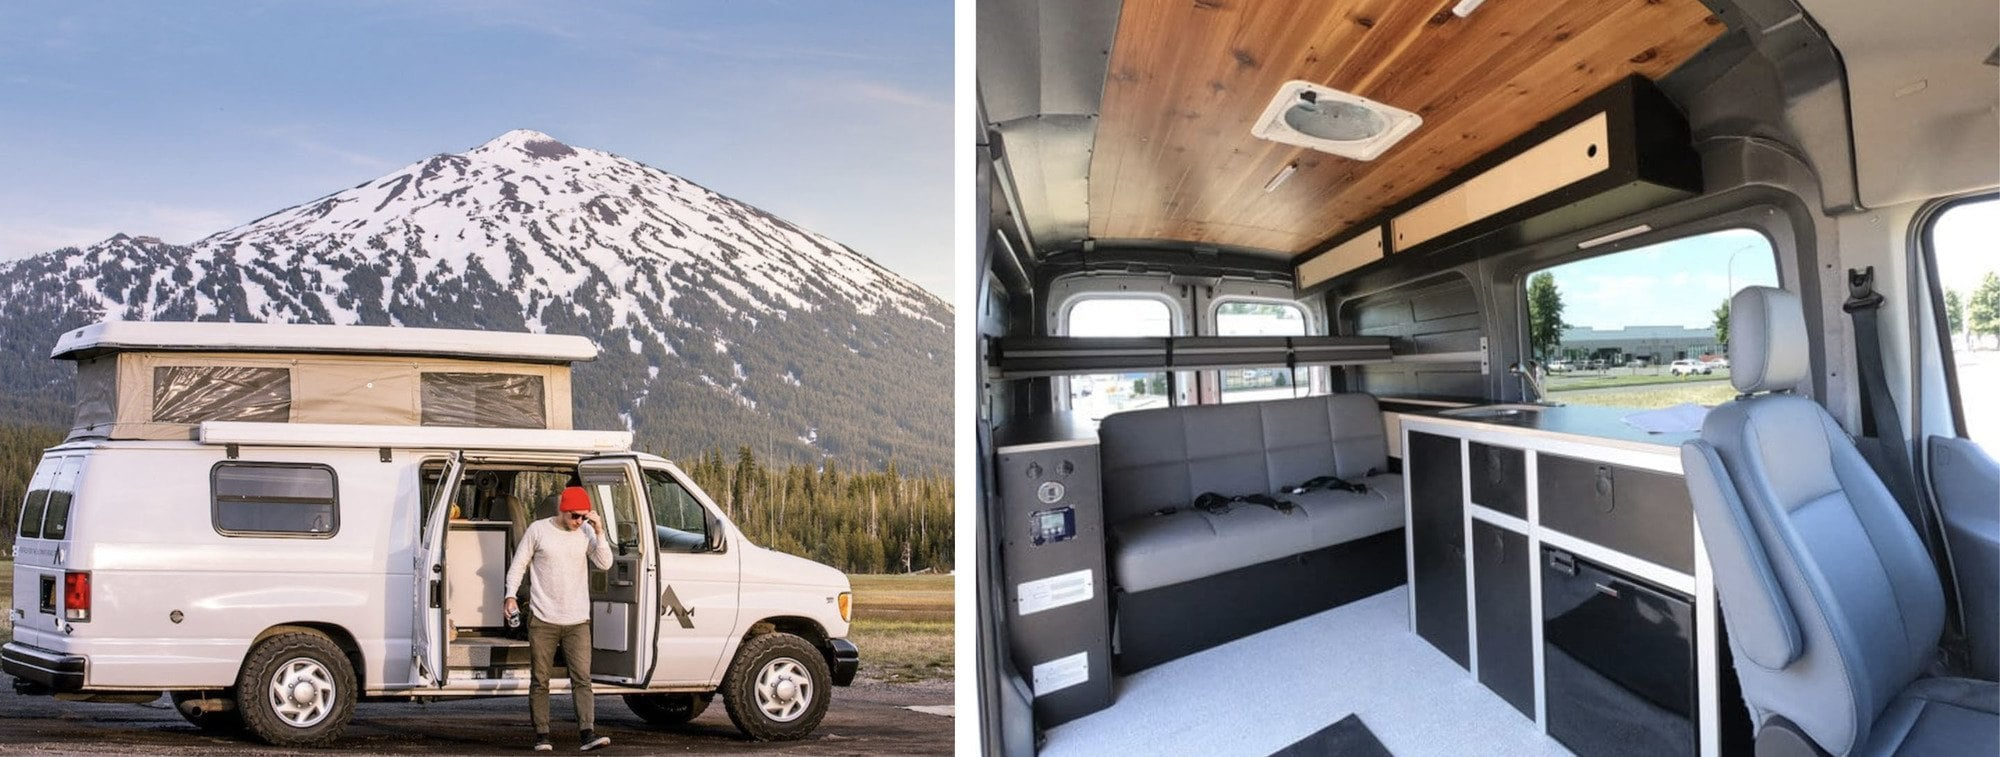 ROAMERICA Rental // Rent an adventure mobile from one of these camper van rental companies & choose from Sprinters, Vanagons, Ford Transits, Sportsmobiles & more!